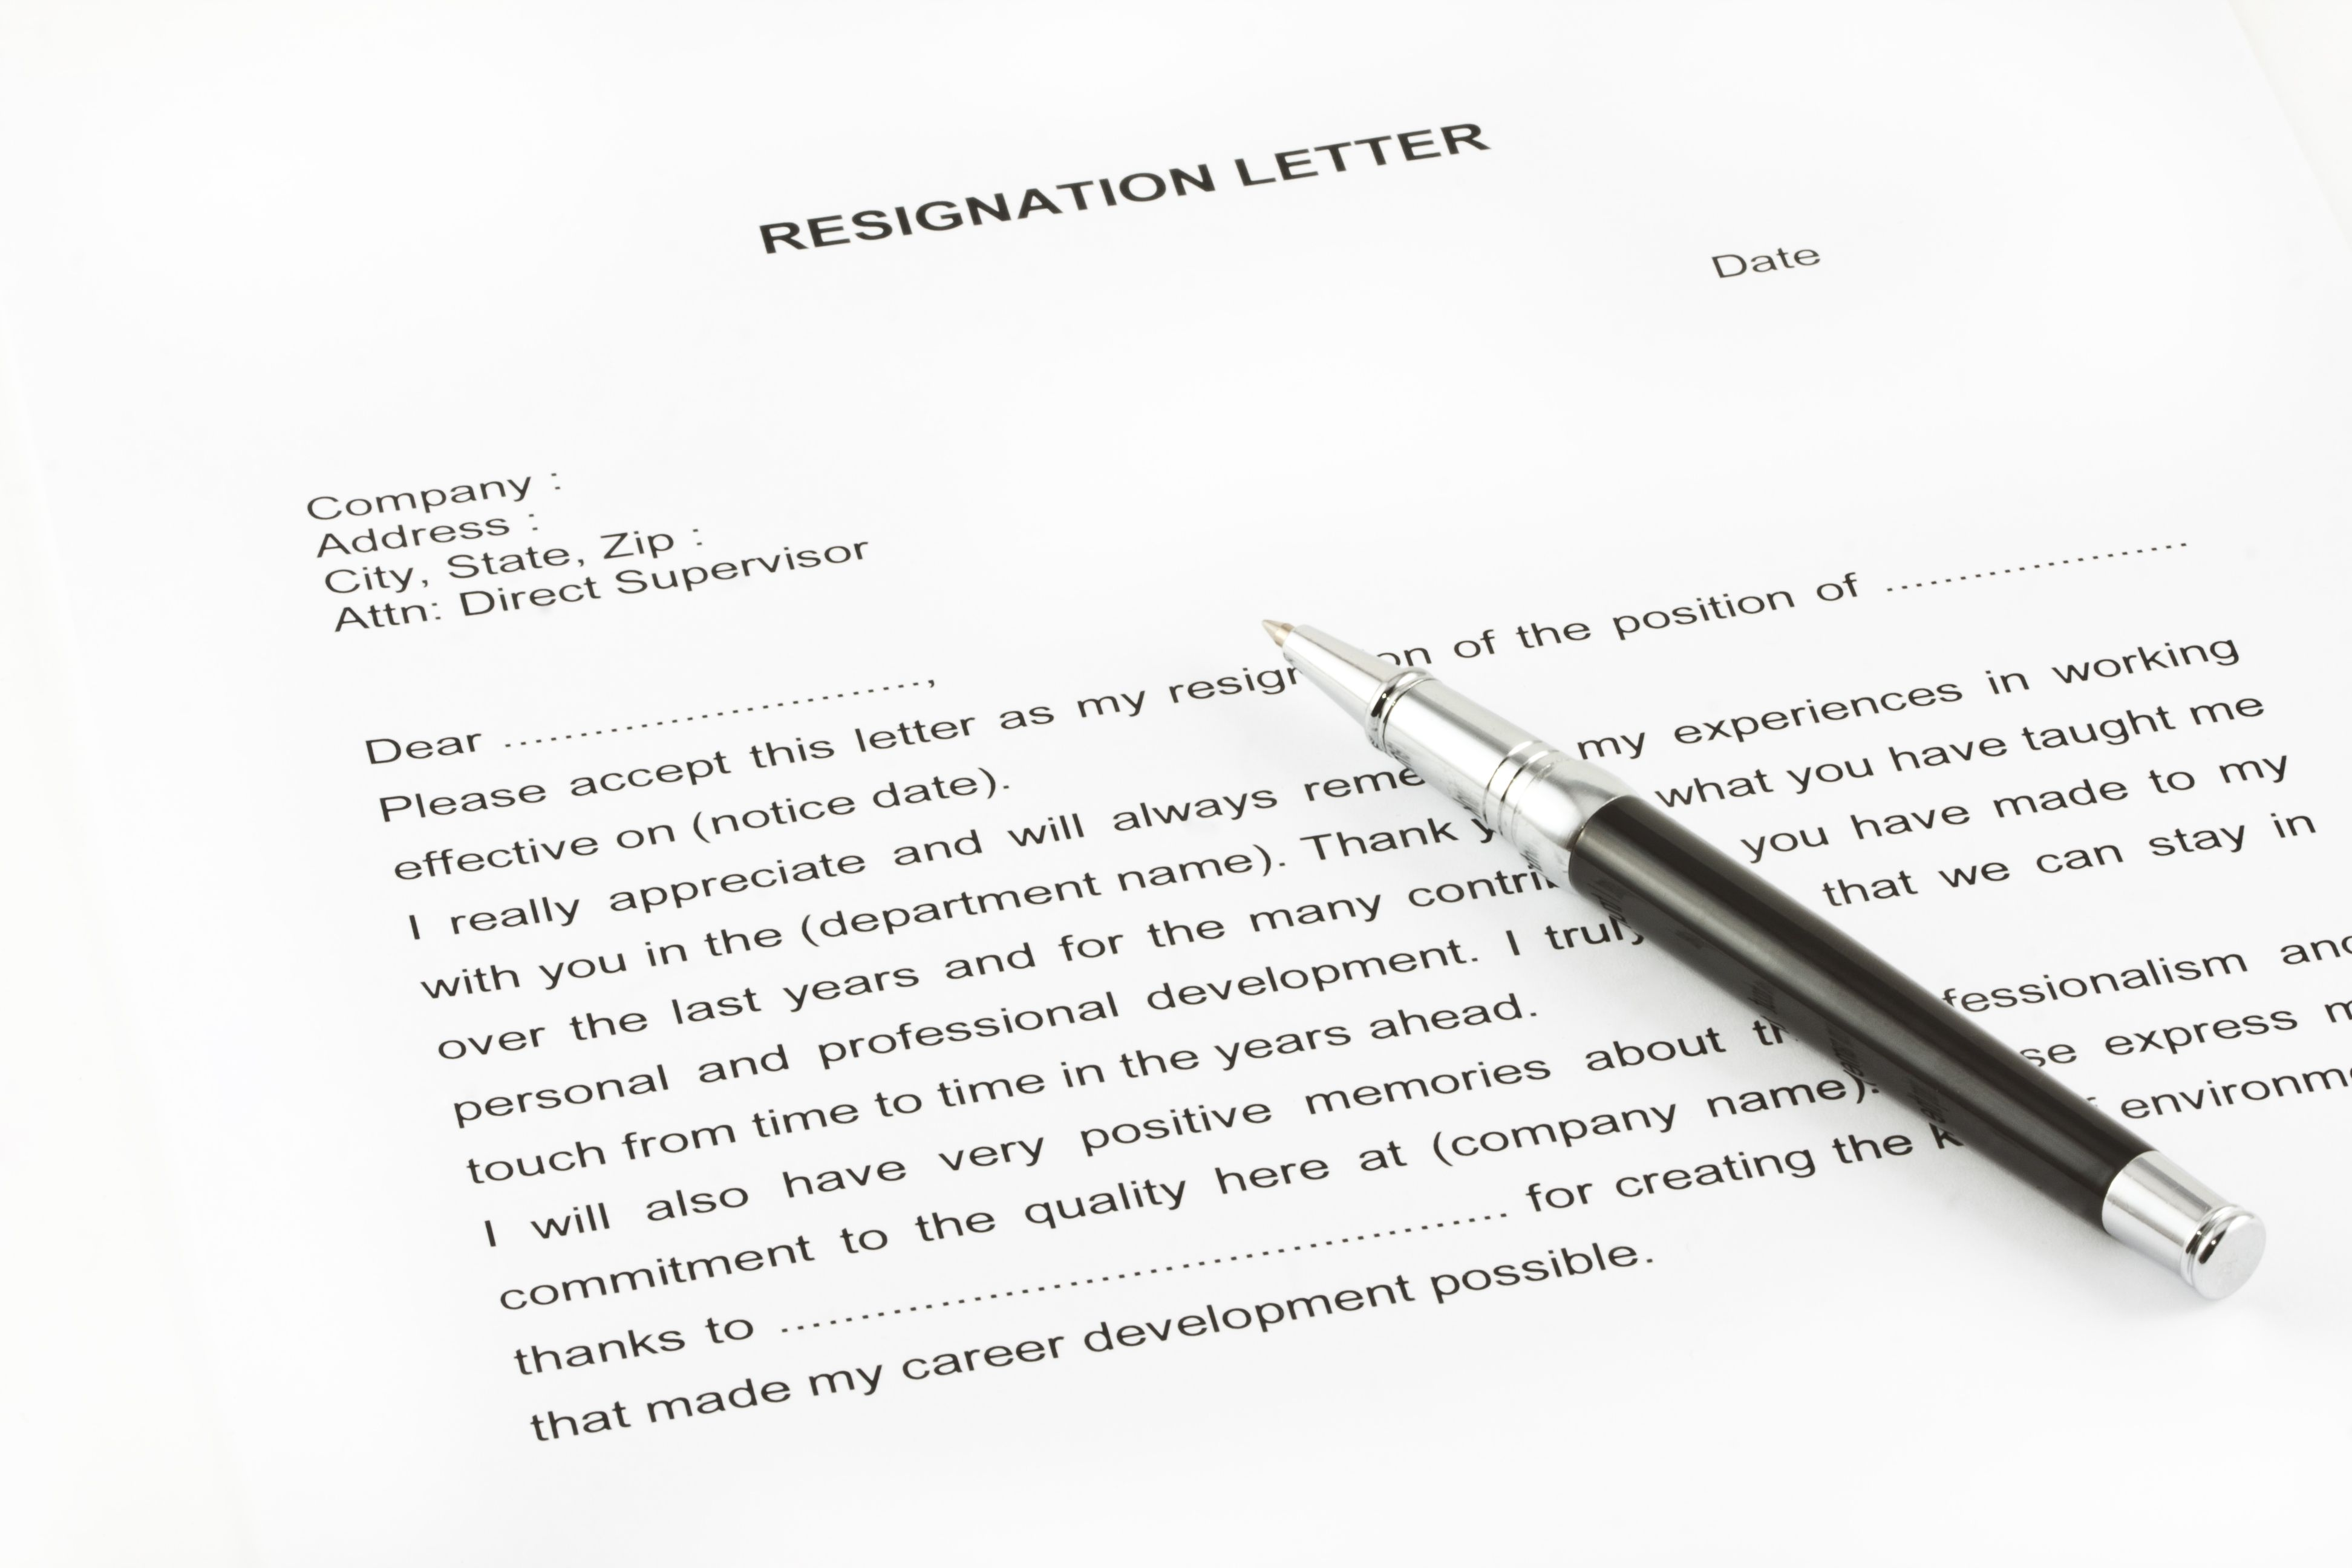 resignation letter due to conflict with boss